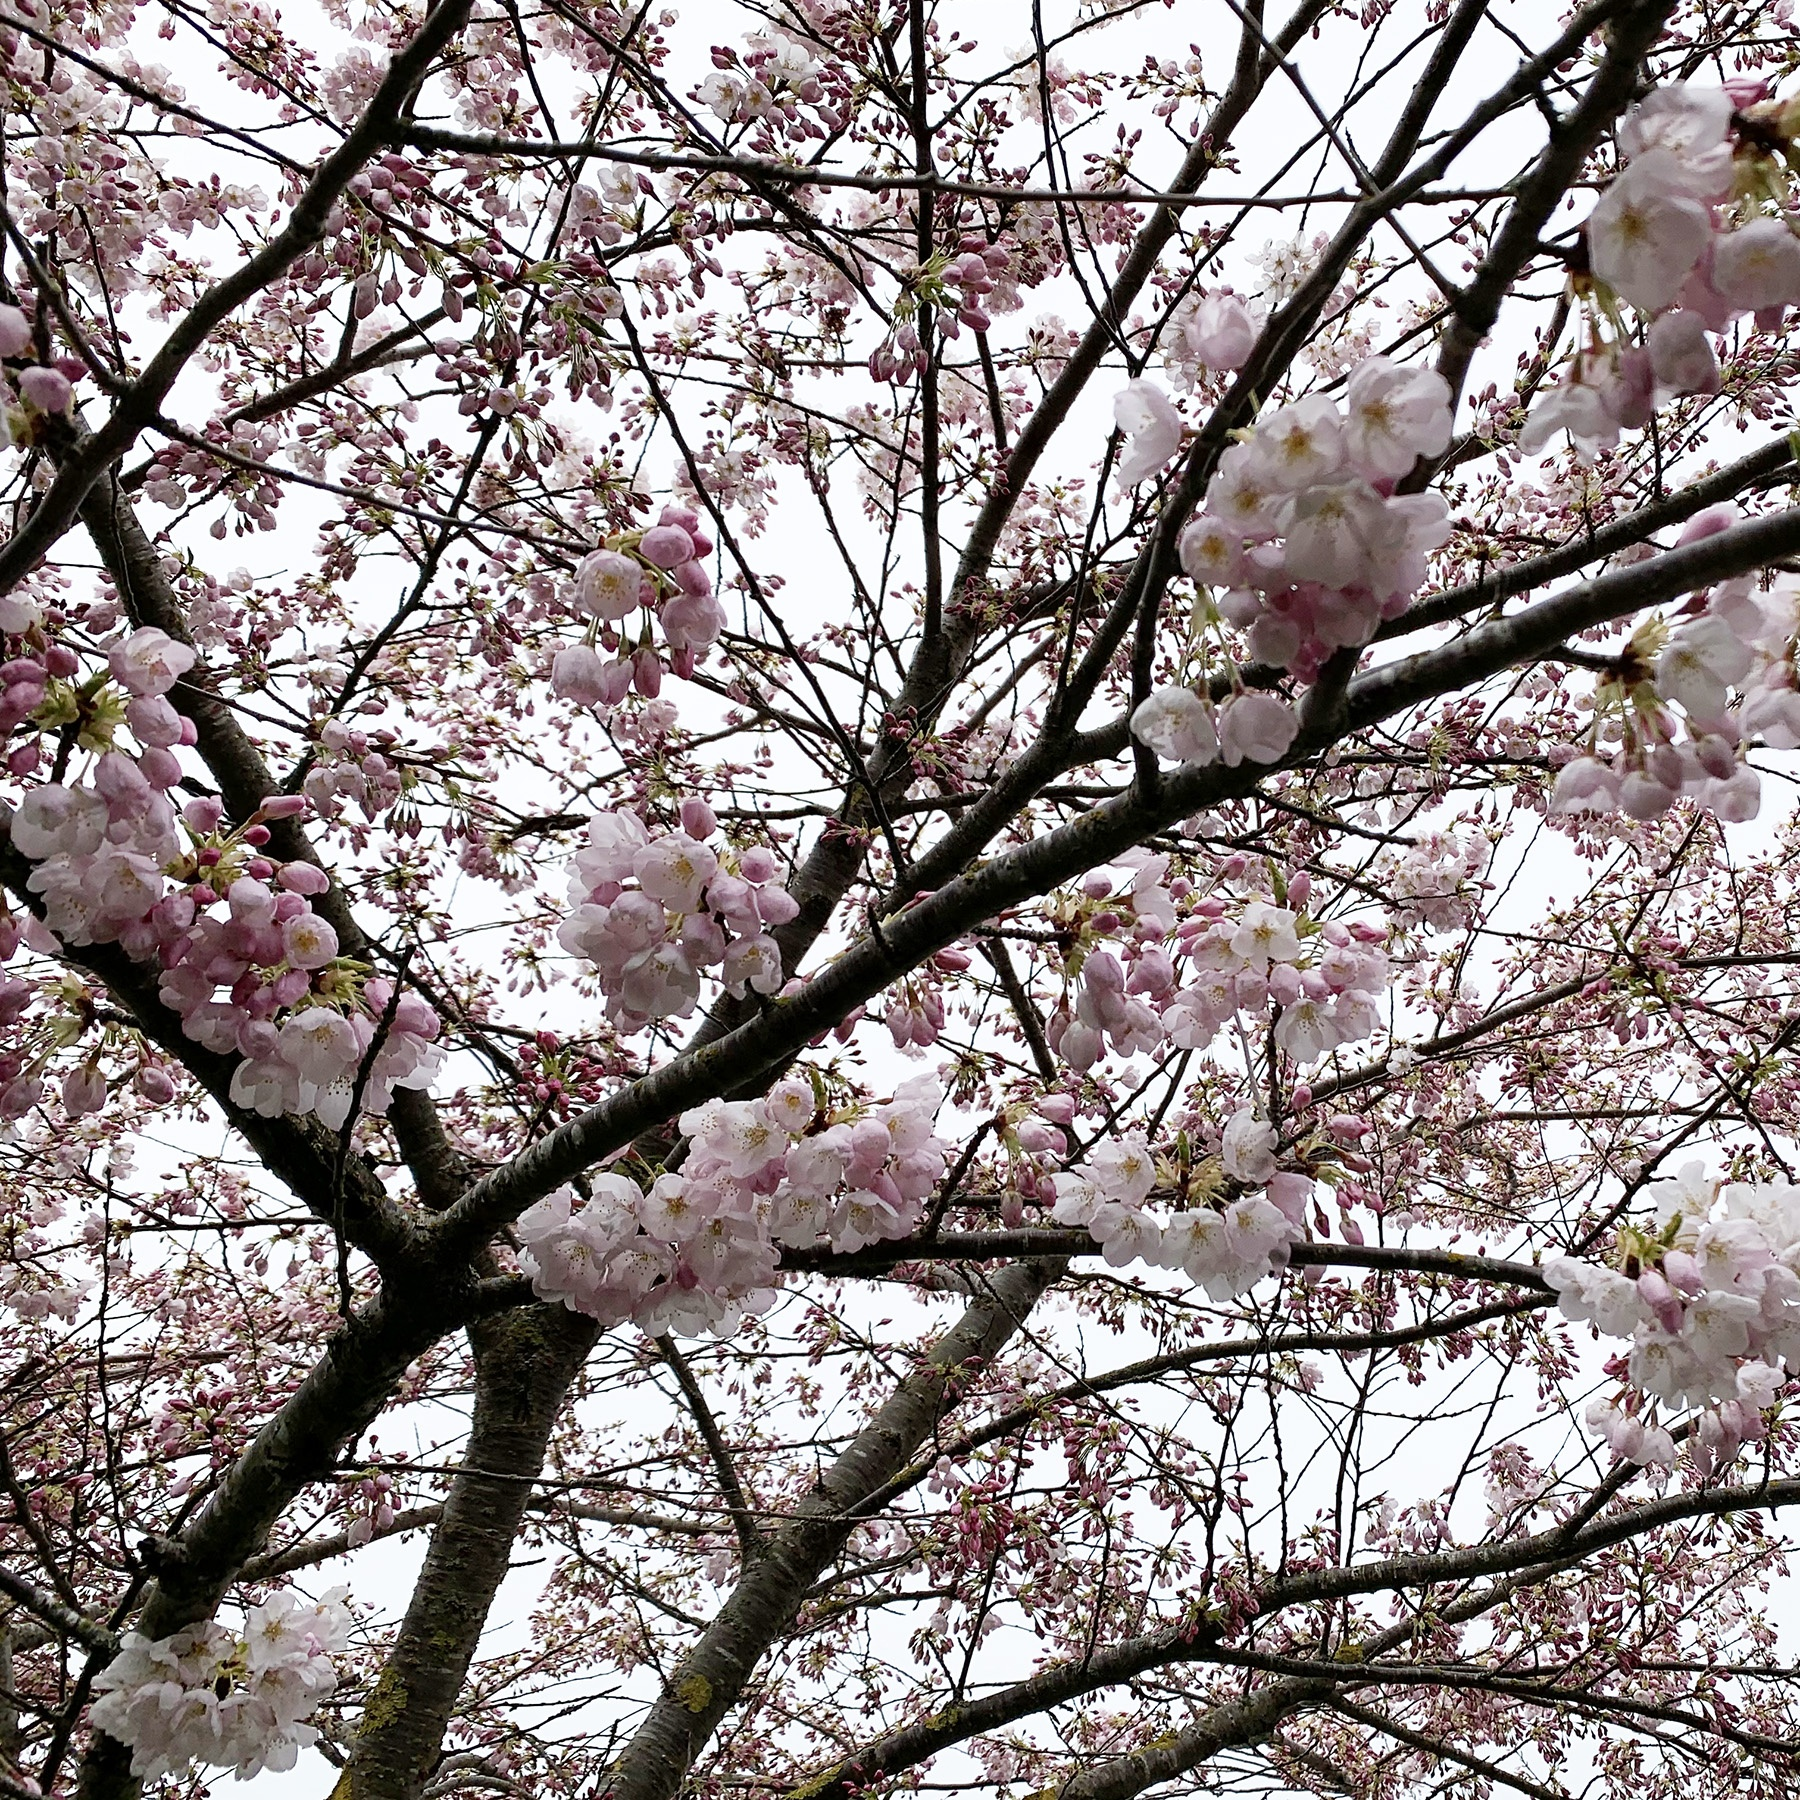 A photo of cherry blossoms against a gray, cloudy sky.